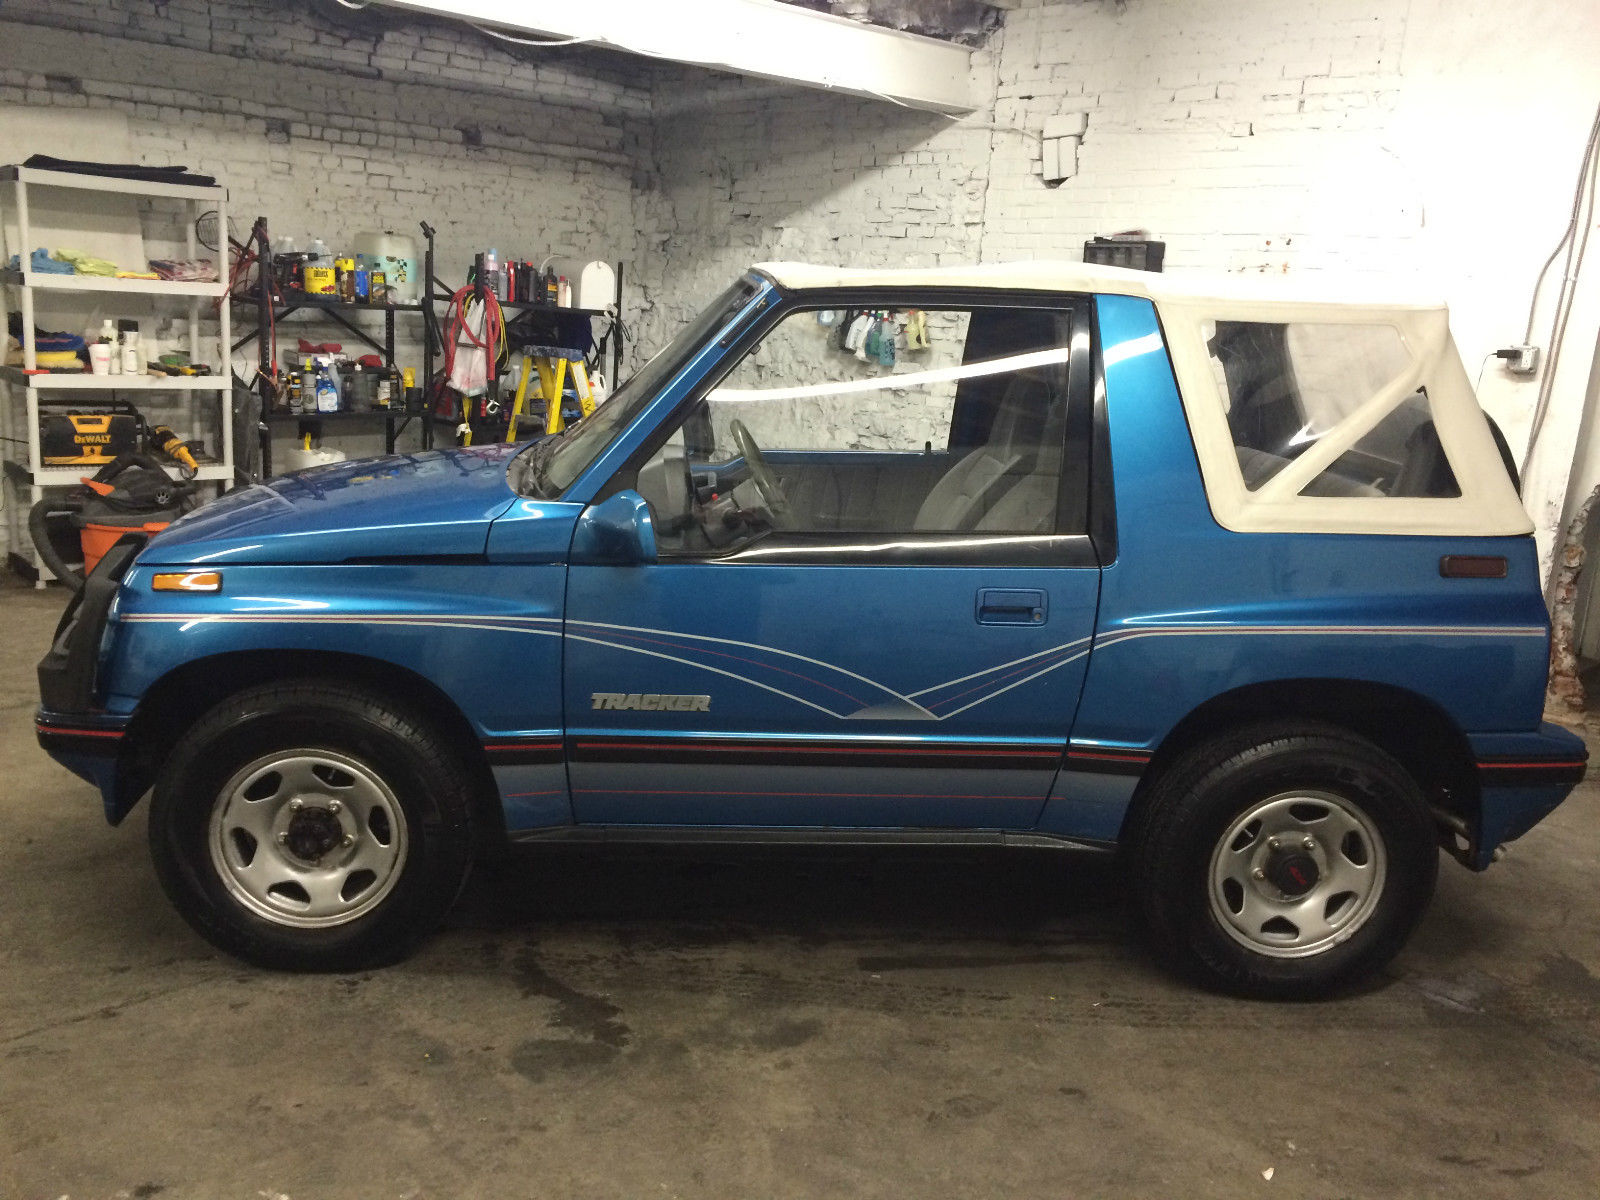 1990 chevy geo tracker 4x4 convertible classic chevrolet tracker 1990 for sale - Tacker fur polstermobel ...